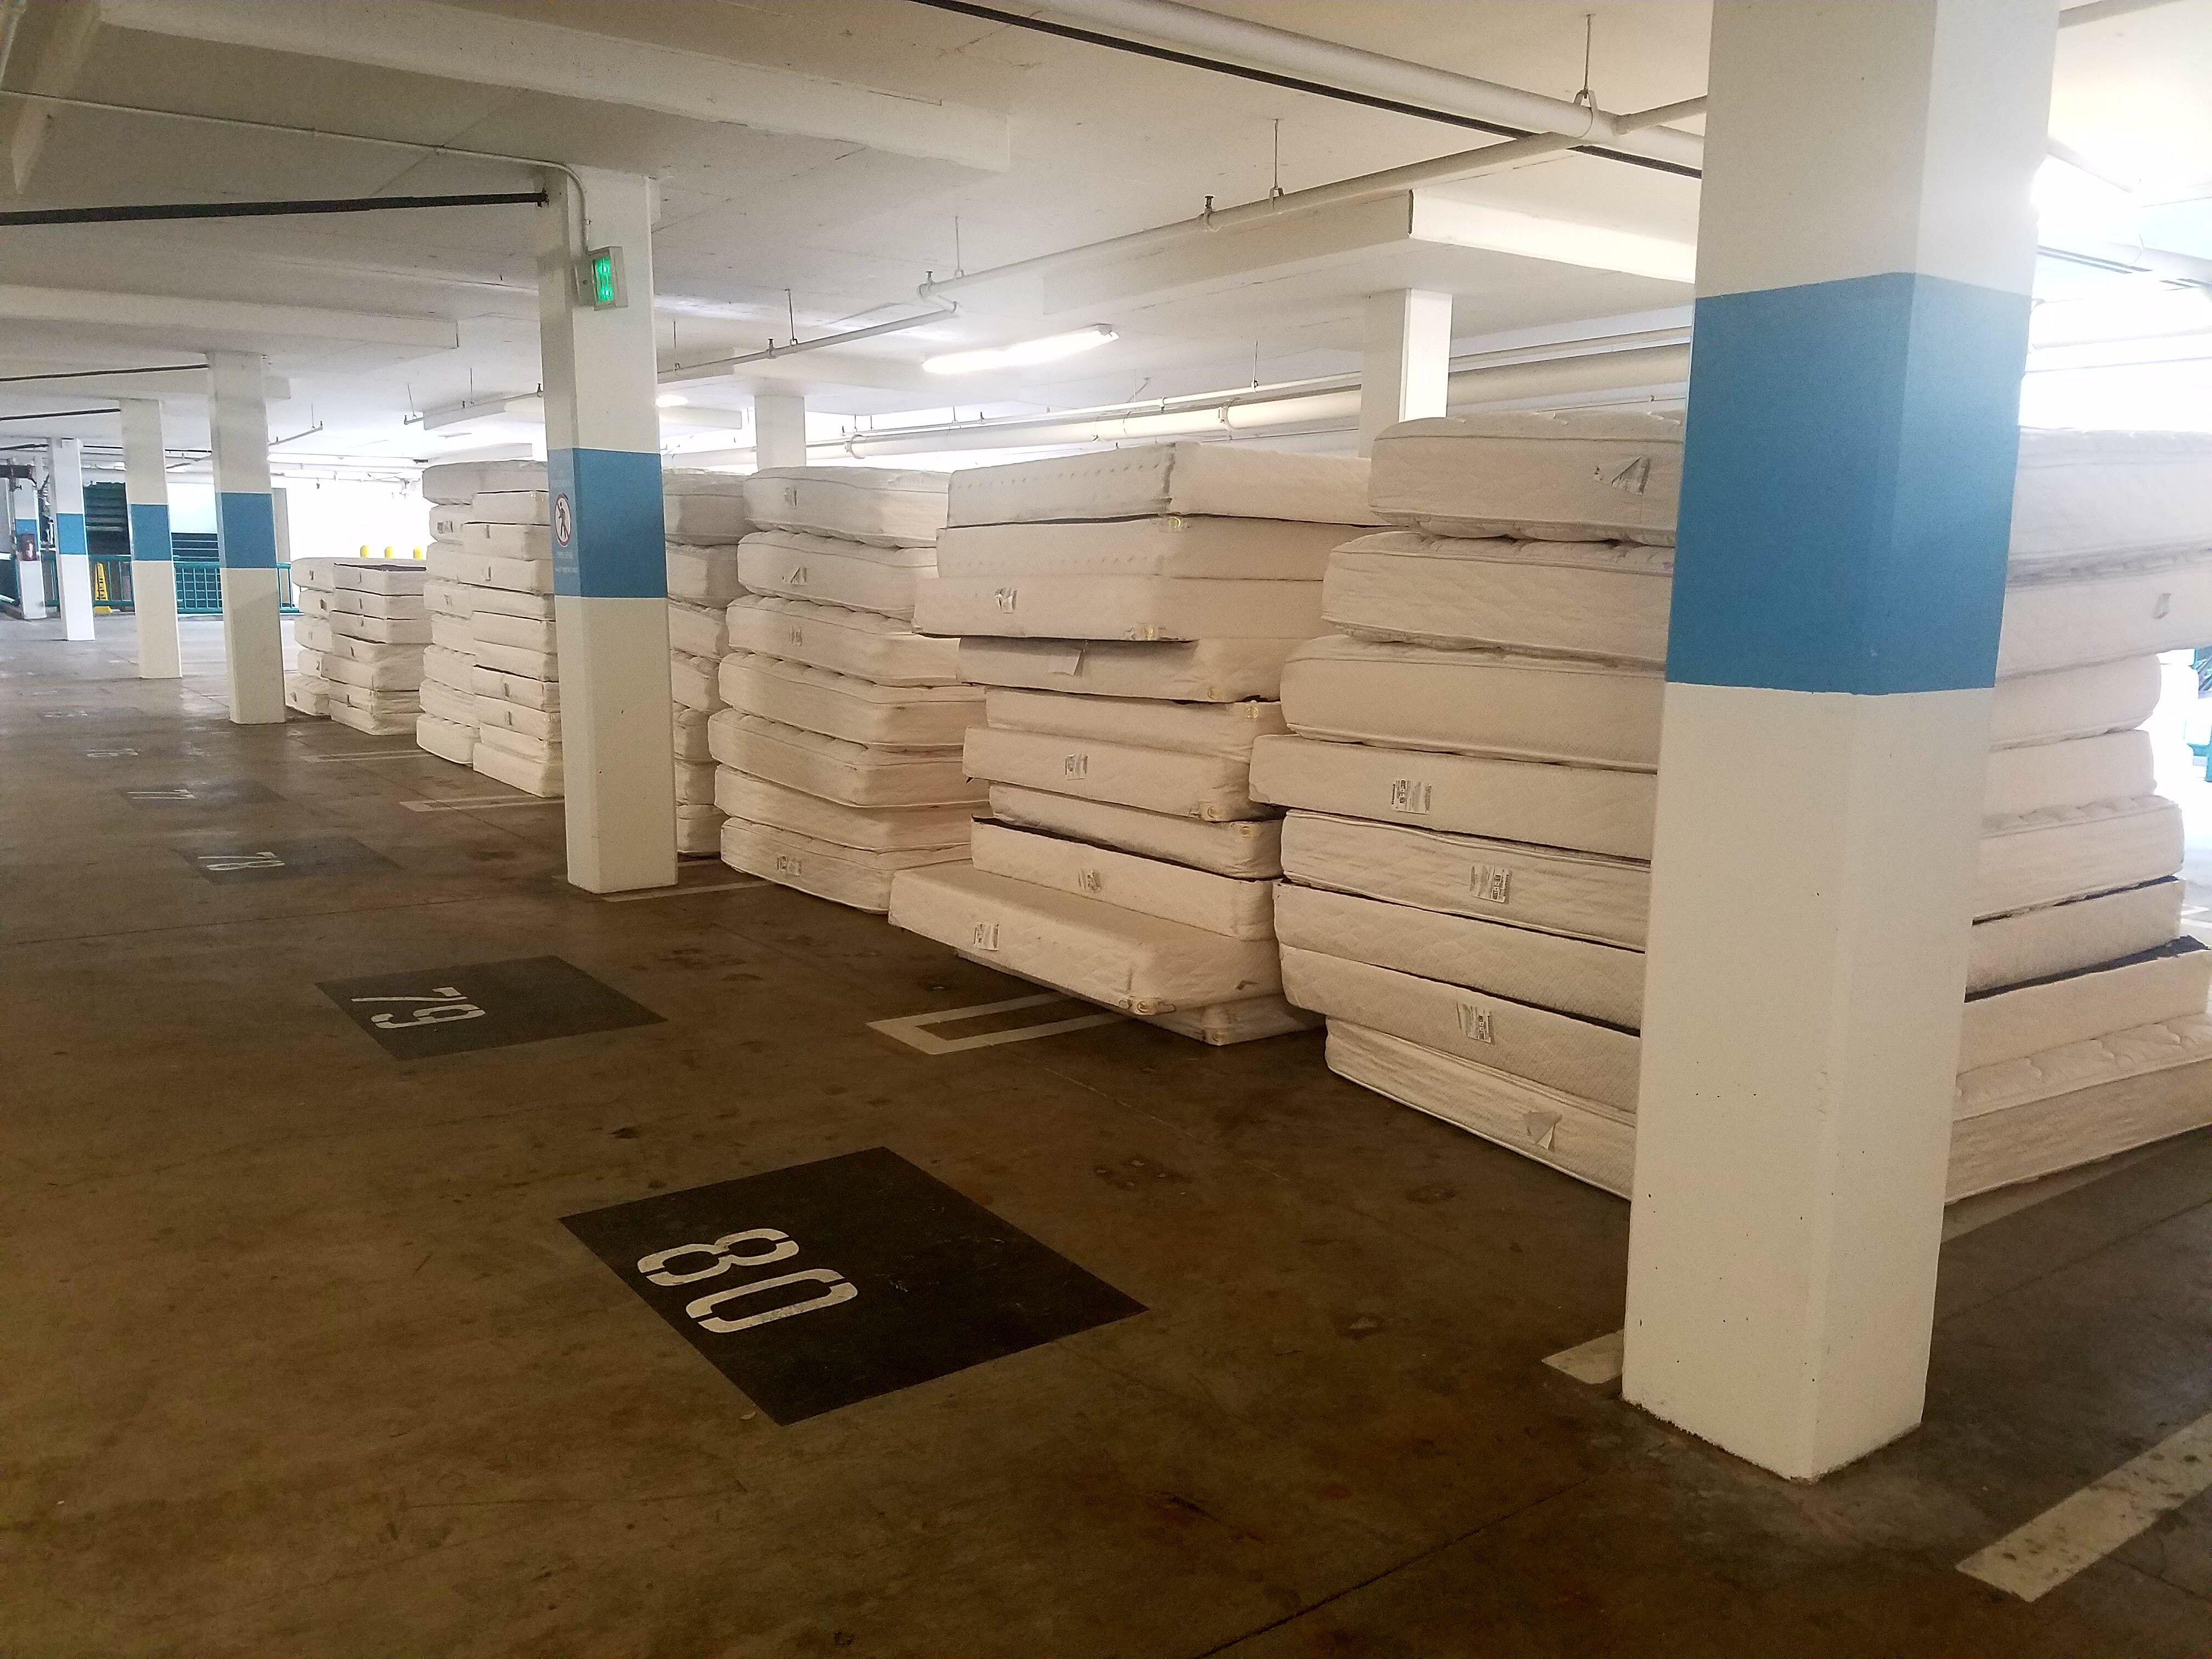 hilton works to divert food waste mattresses from landfill waste